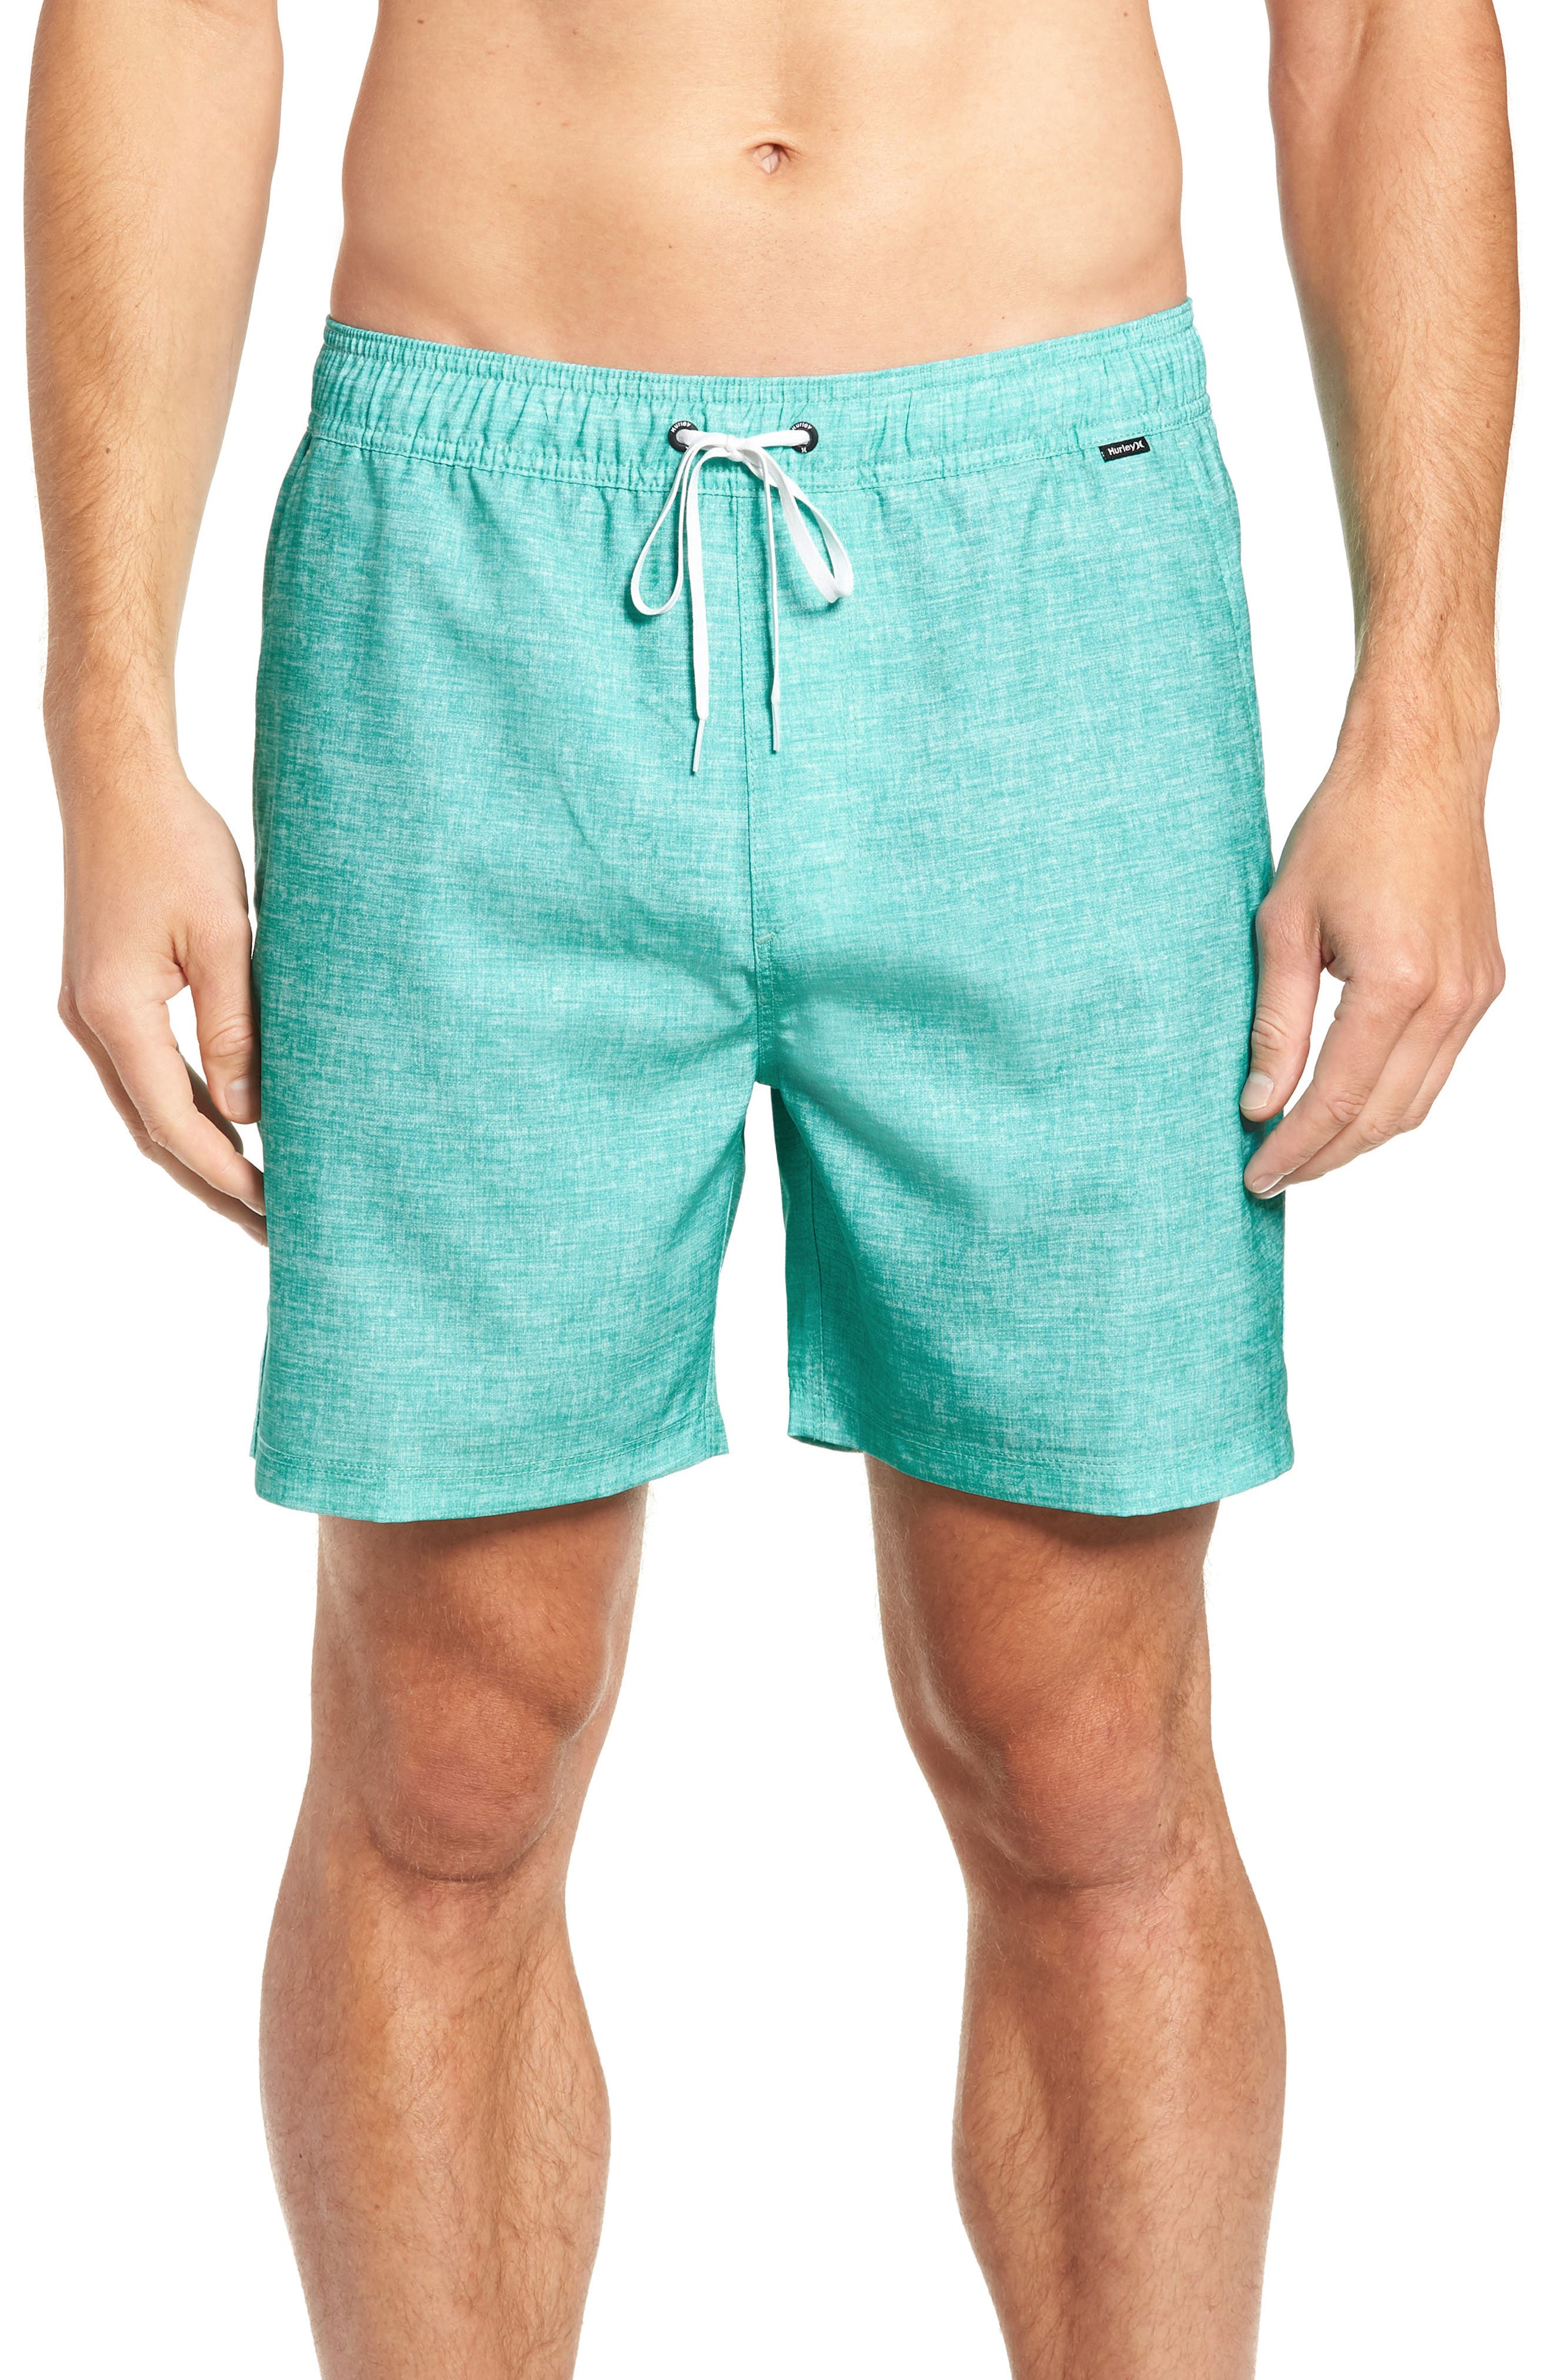 Hurley Heather Volley Swim Trunks, Green